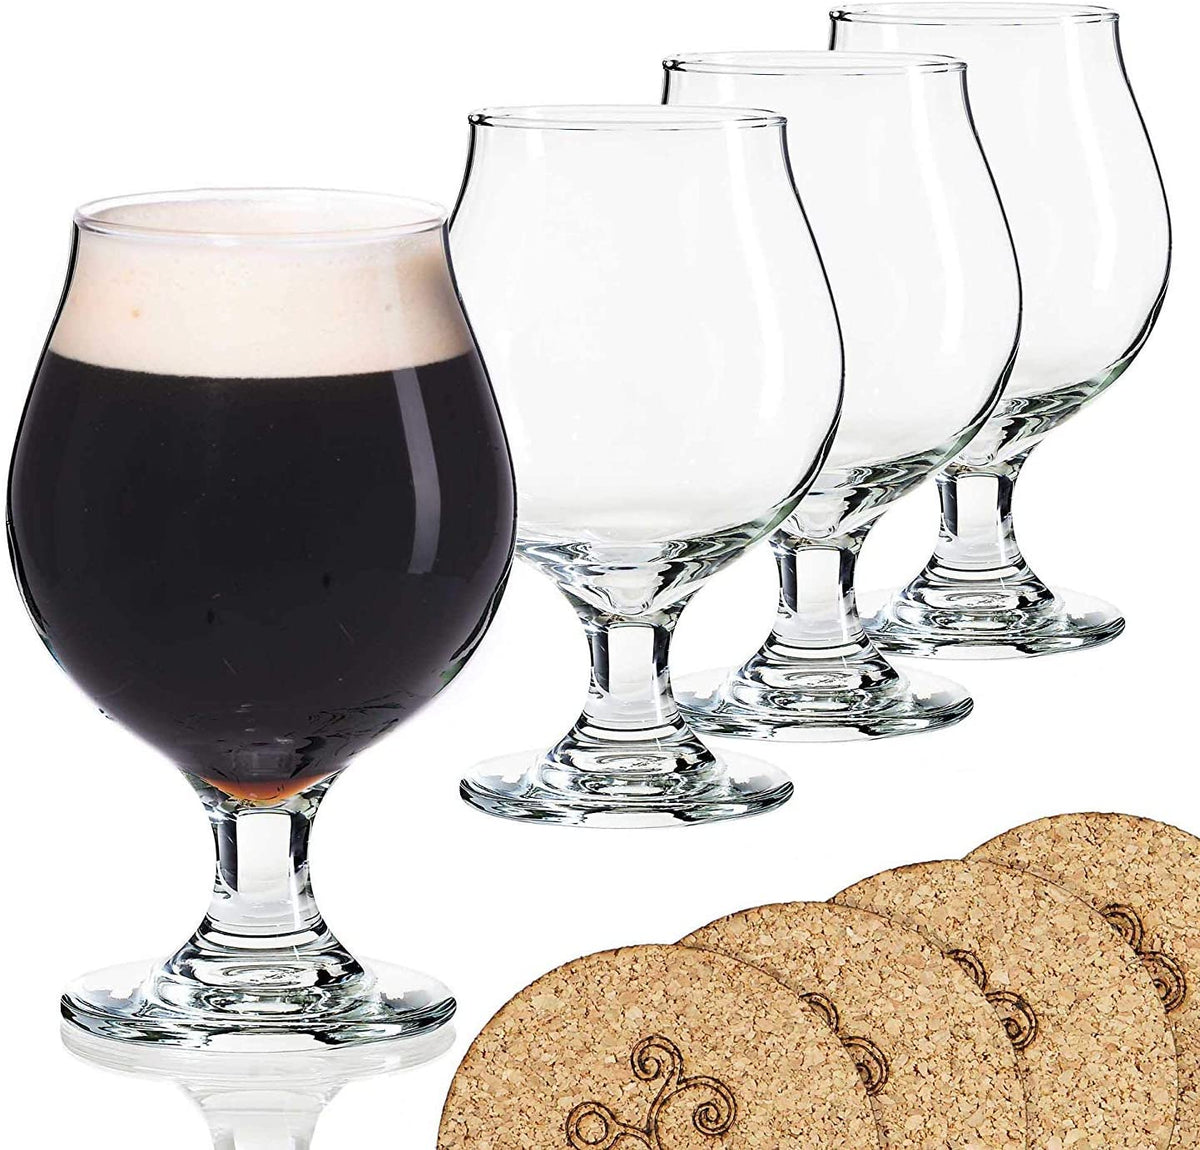 Libbey beer glass in Belgian style with coasters (16 ounces)